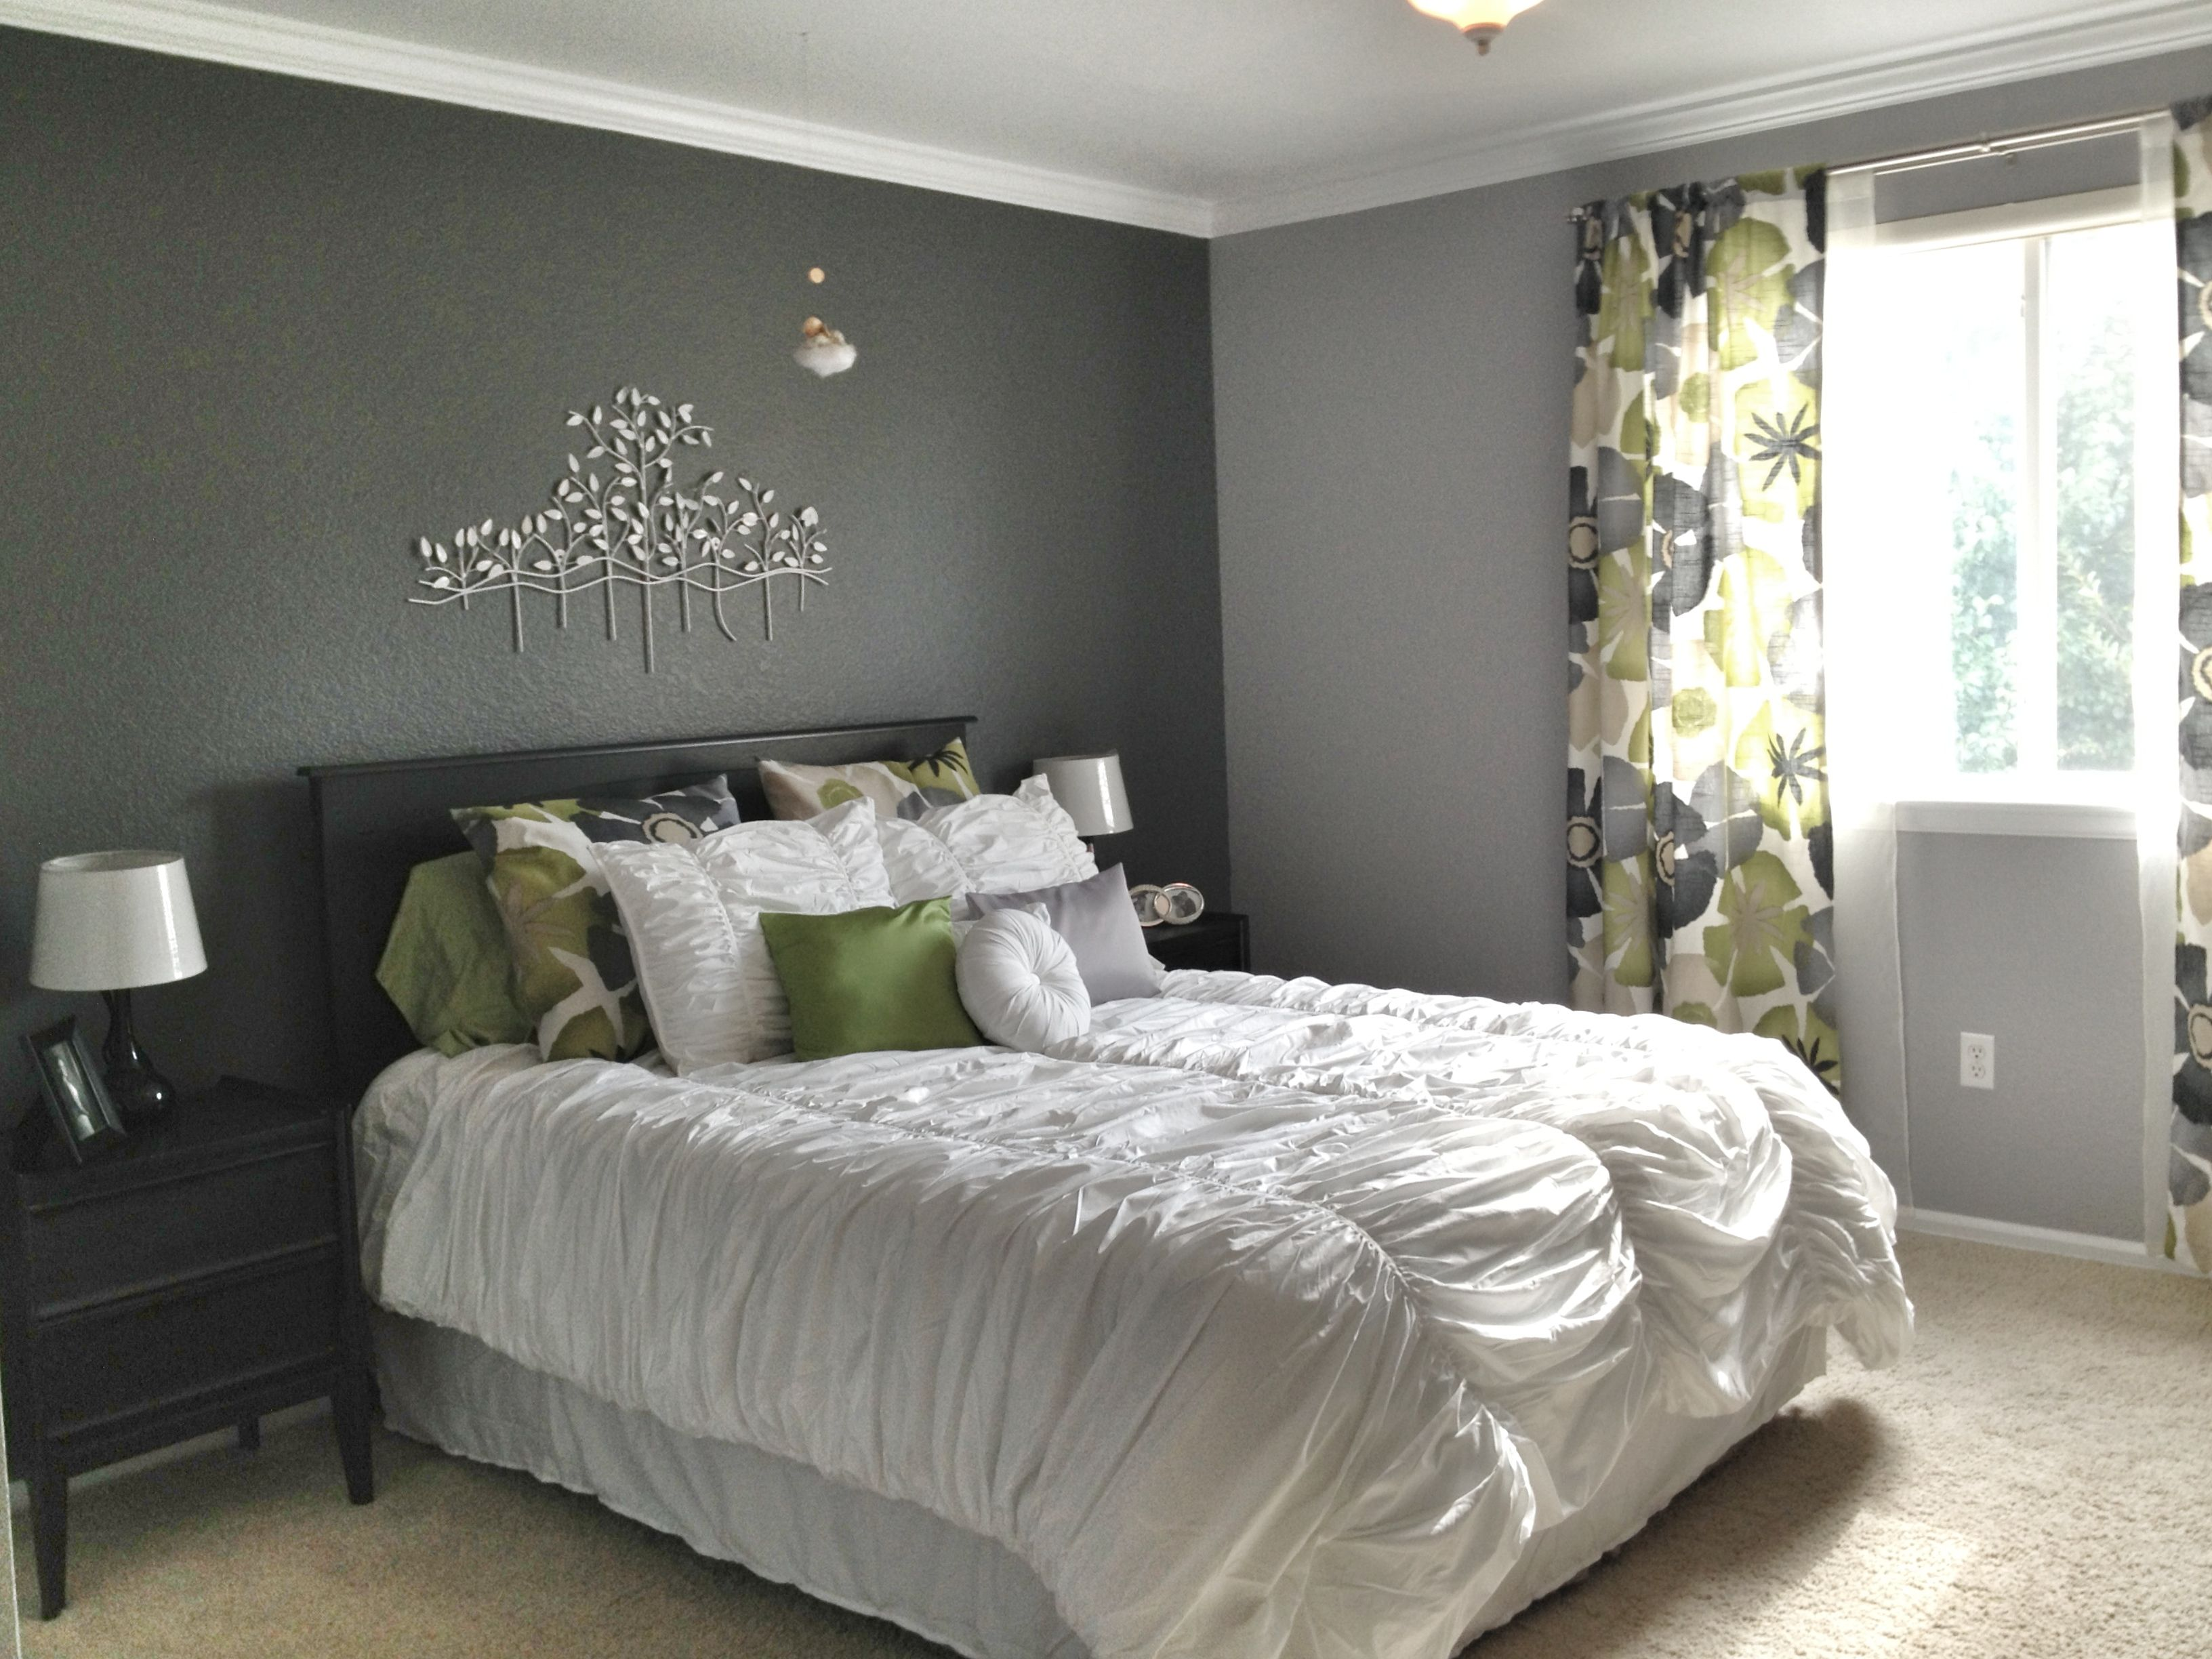 Grey master bedroom dark accent wall fun patterned curtains with matching shams and bright Master bedroom with grey furniture